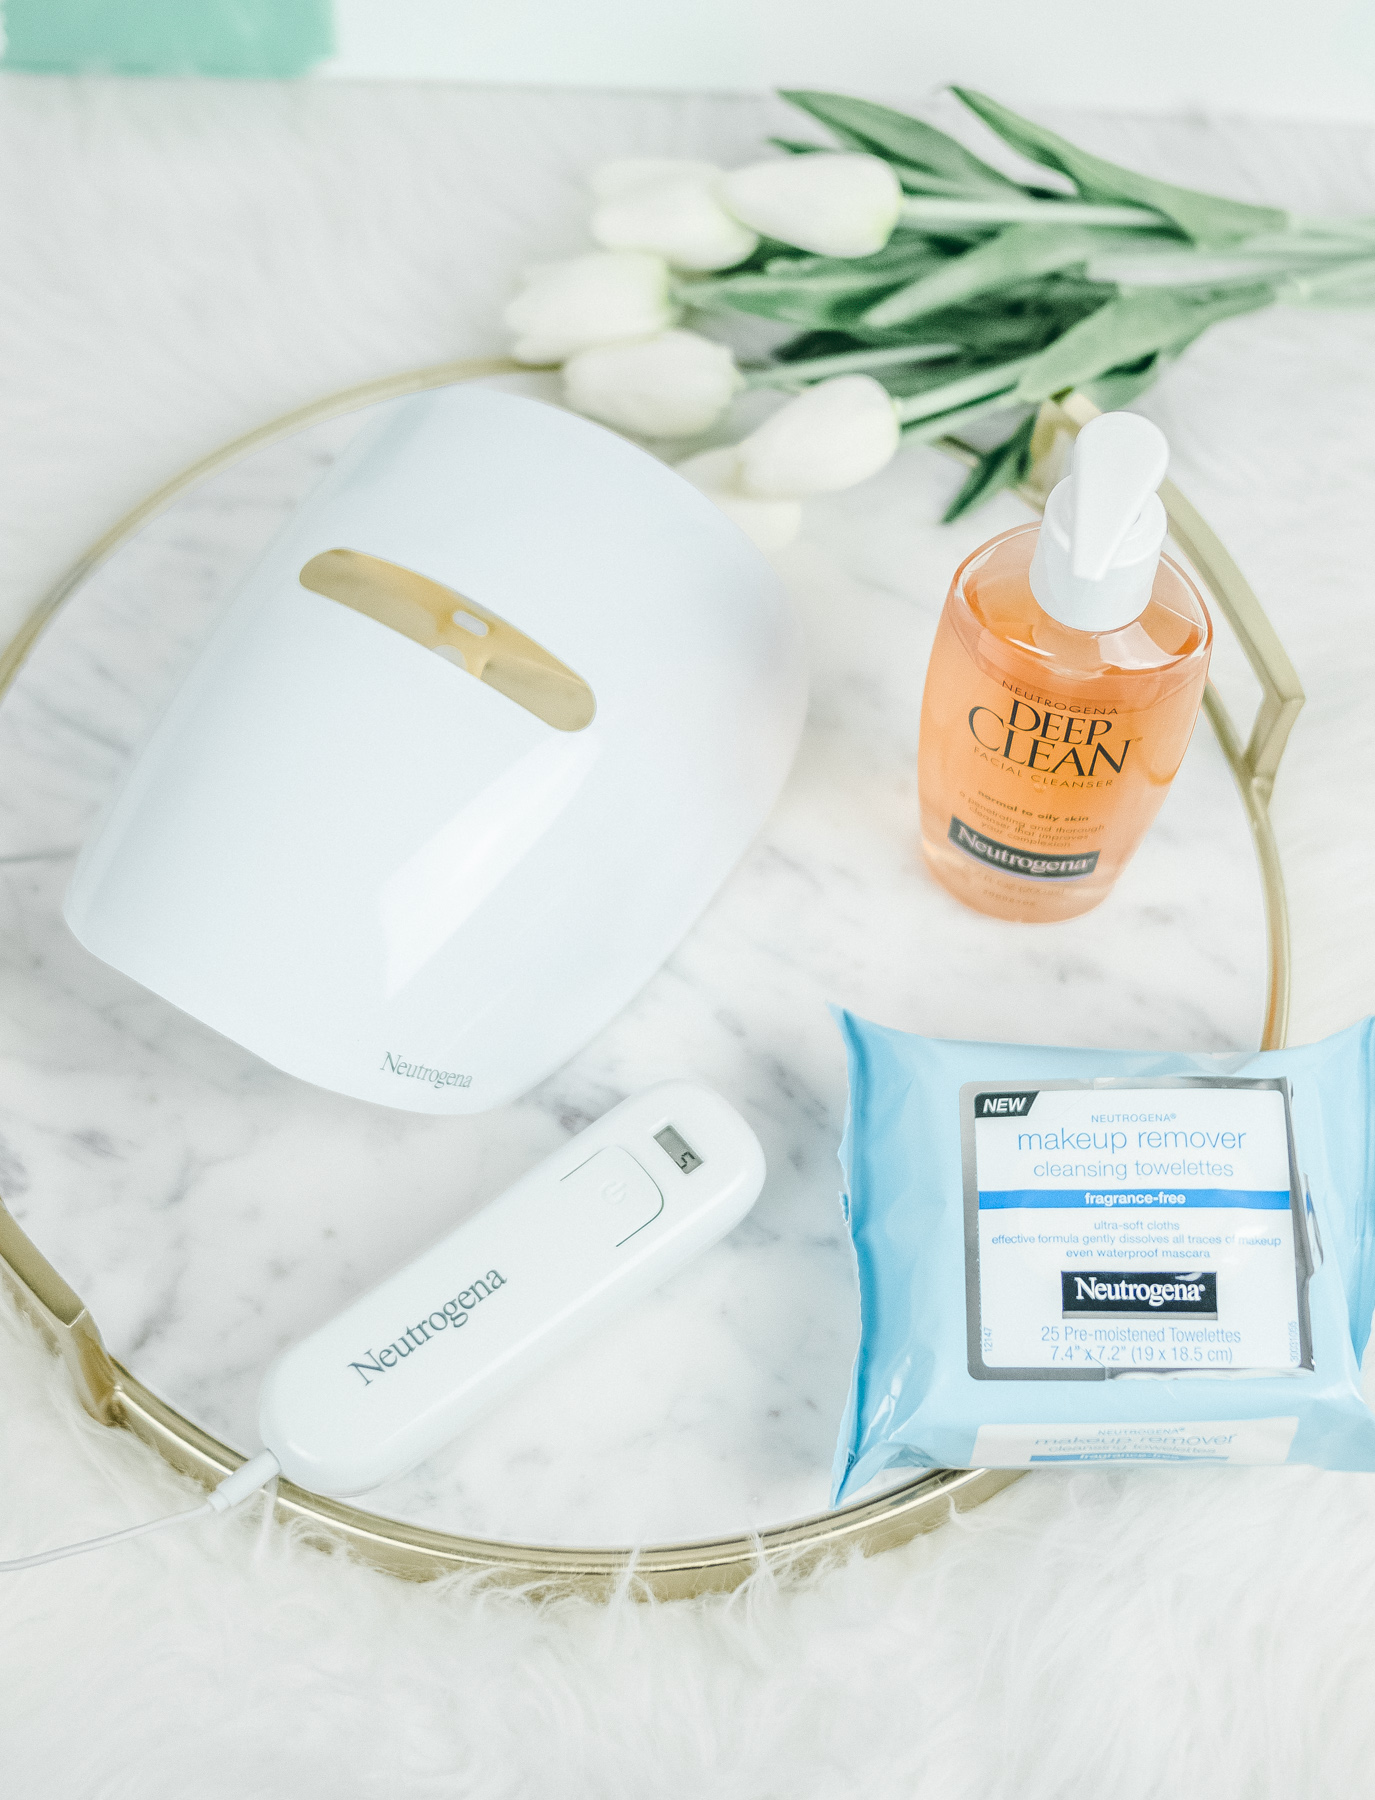 Neutrogena Light Therapy acne mask, Deep Clean cleanser, and makeup removing towelettes